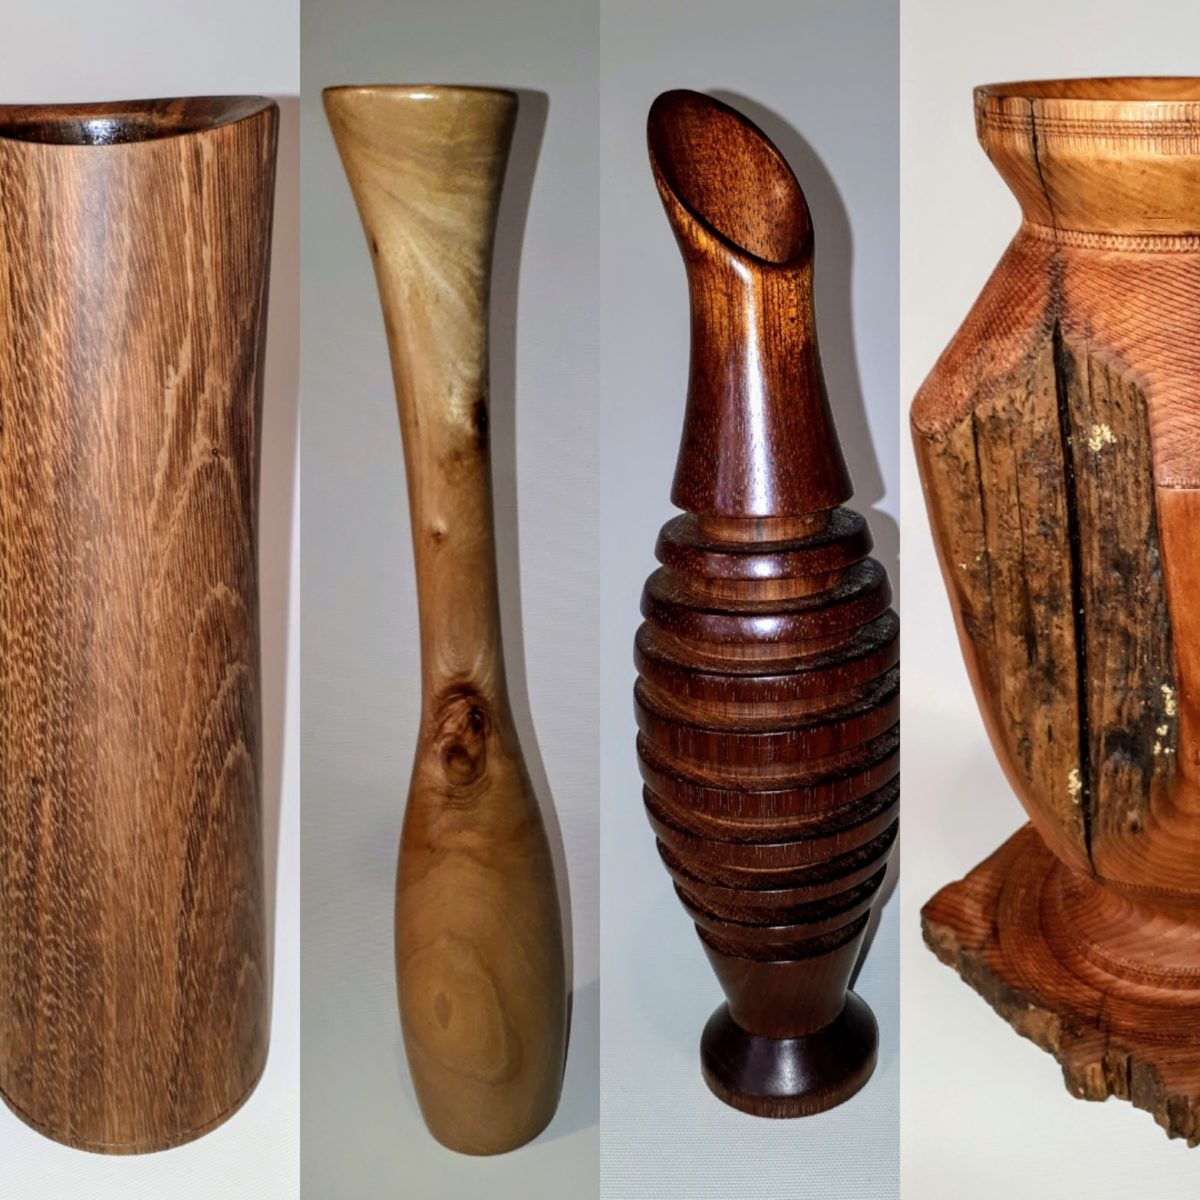 Woodturned flower vases